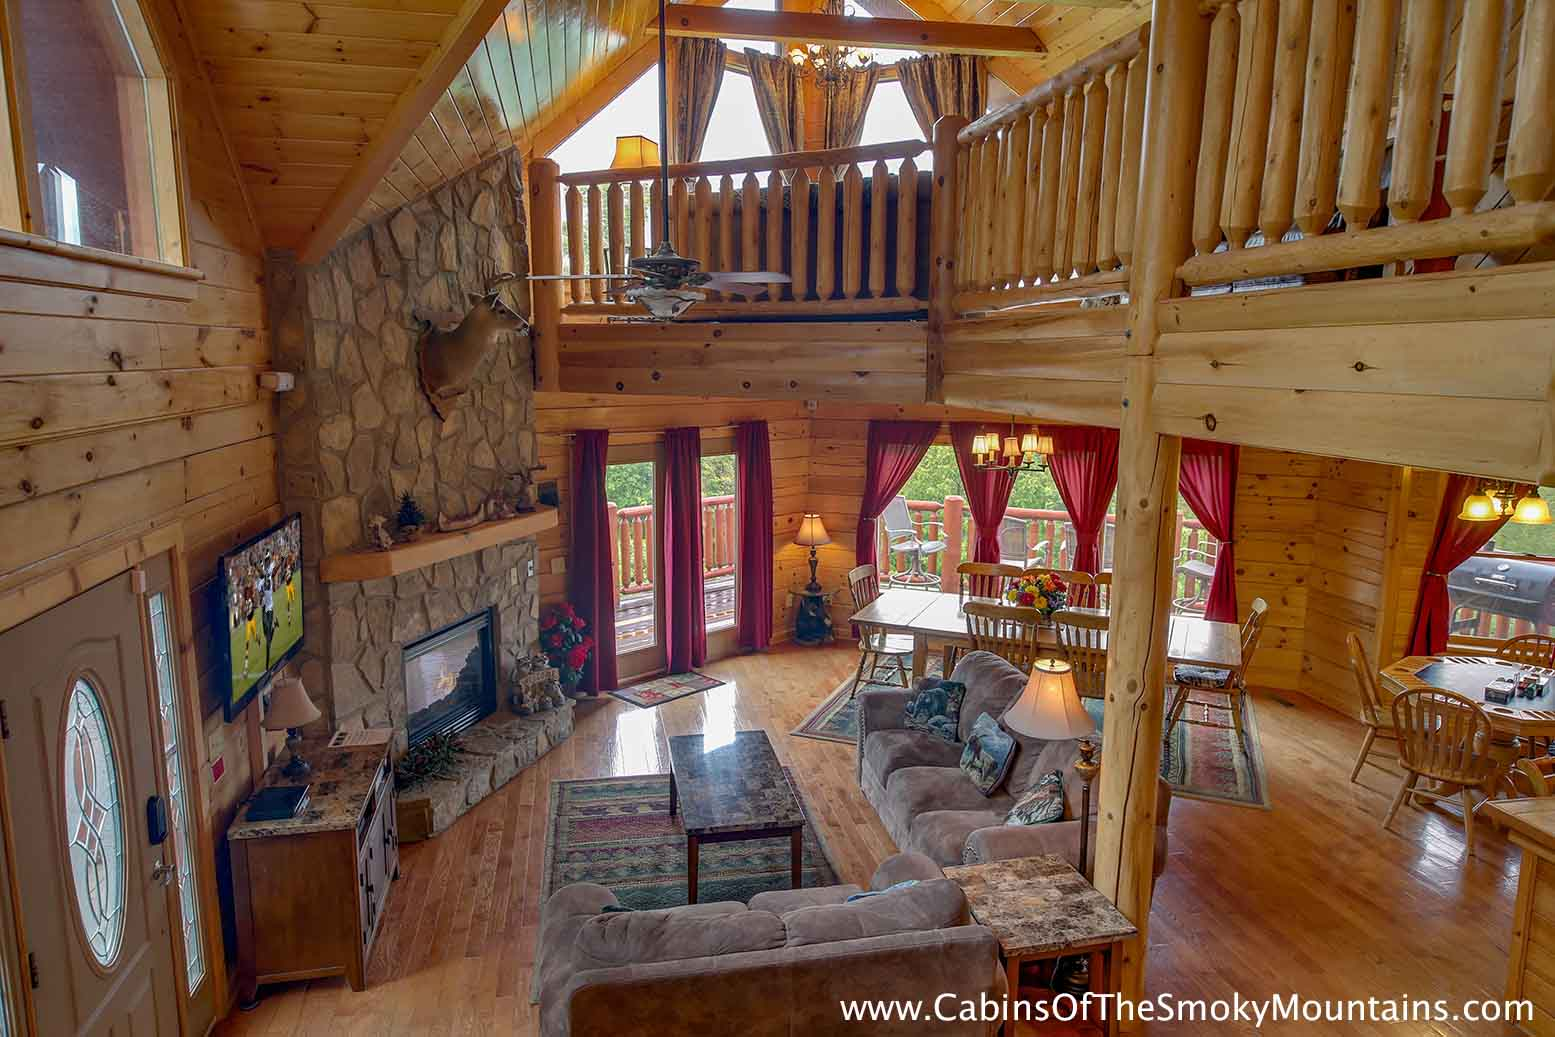 5 bedroom cabins in pigeon forge tn for One bedroom cabins in pigeon forge tn